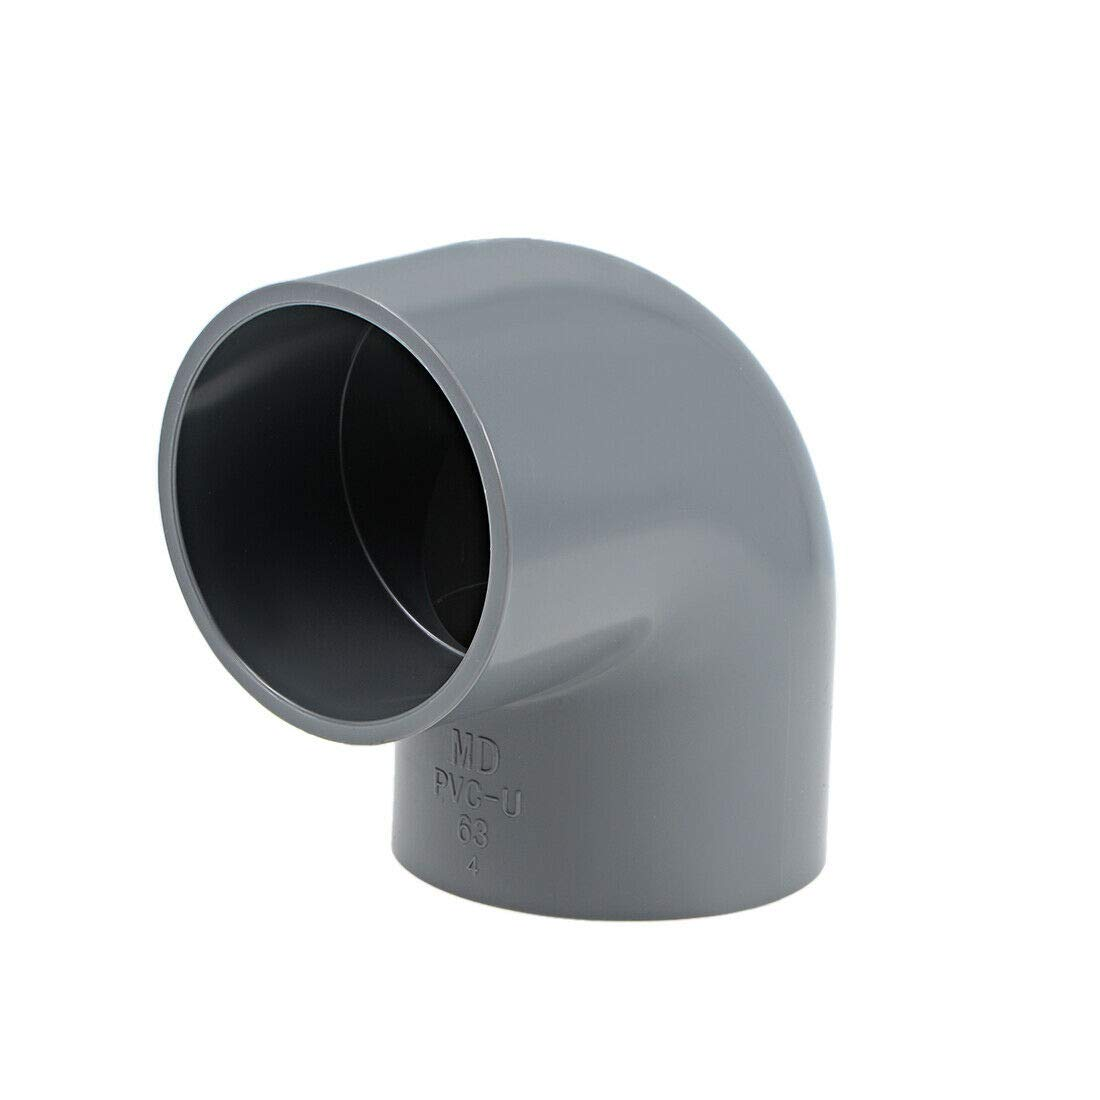 Pipe Fittings 90 Degree Baltimore Mall PVC Socket 35% OFF Fitting Elbow 63mm